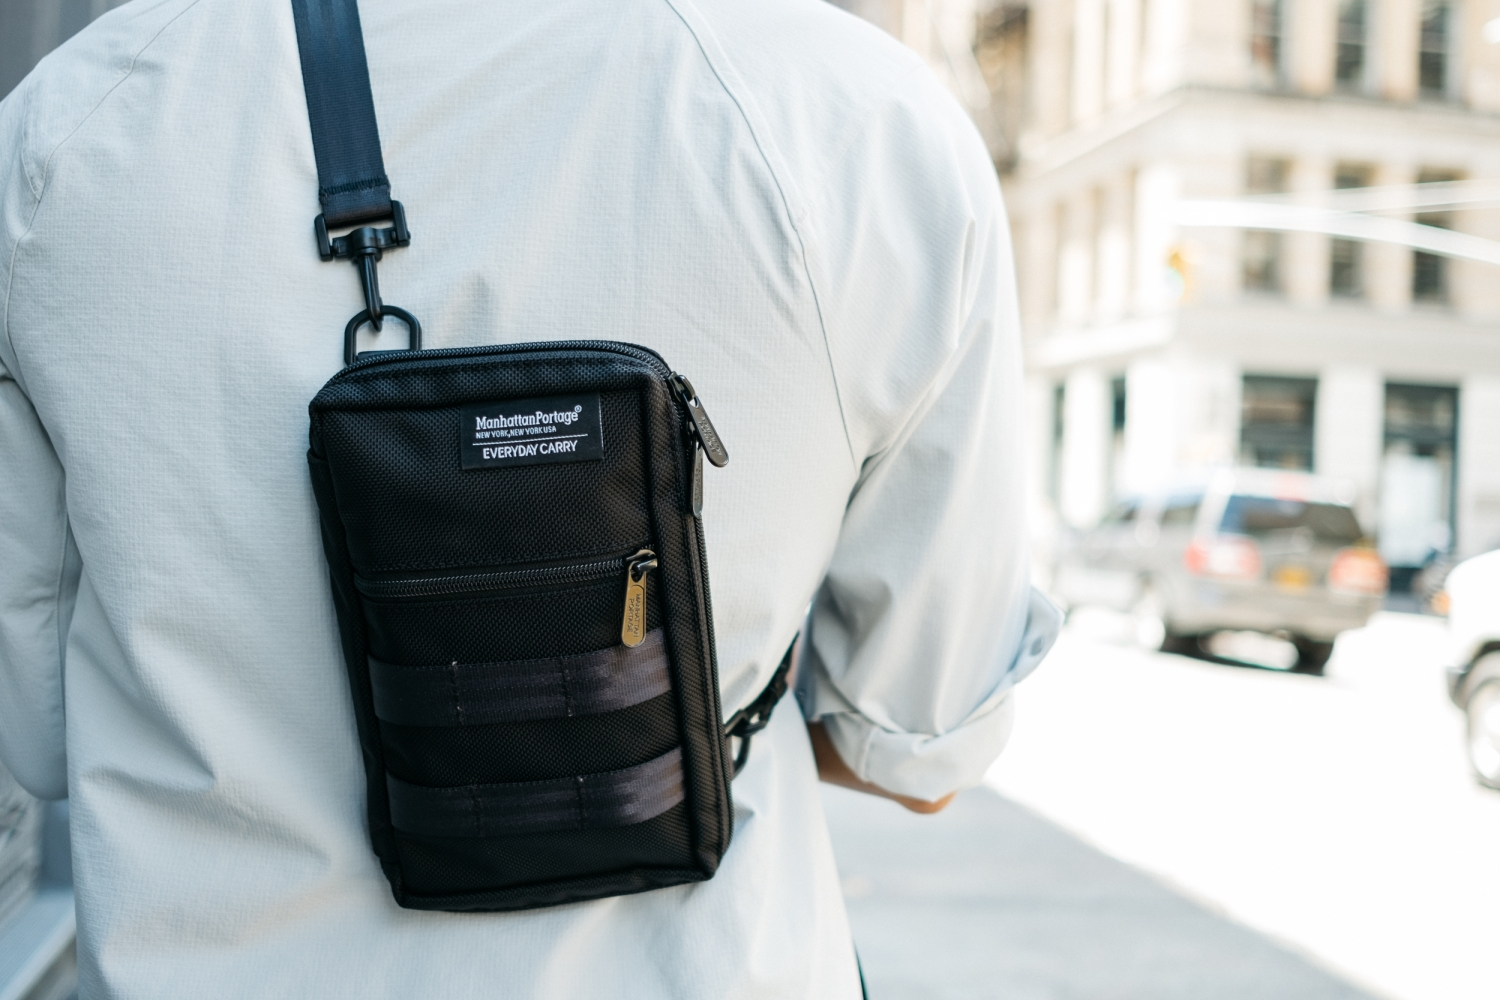 EverydayCarry.com x Manhattan Portage Atlas Sling